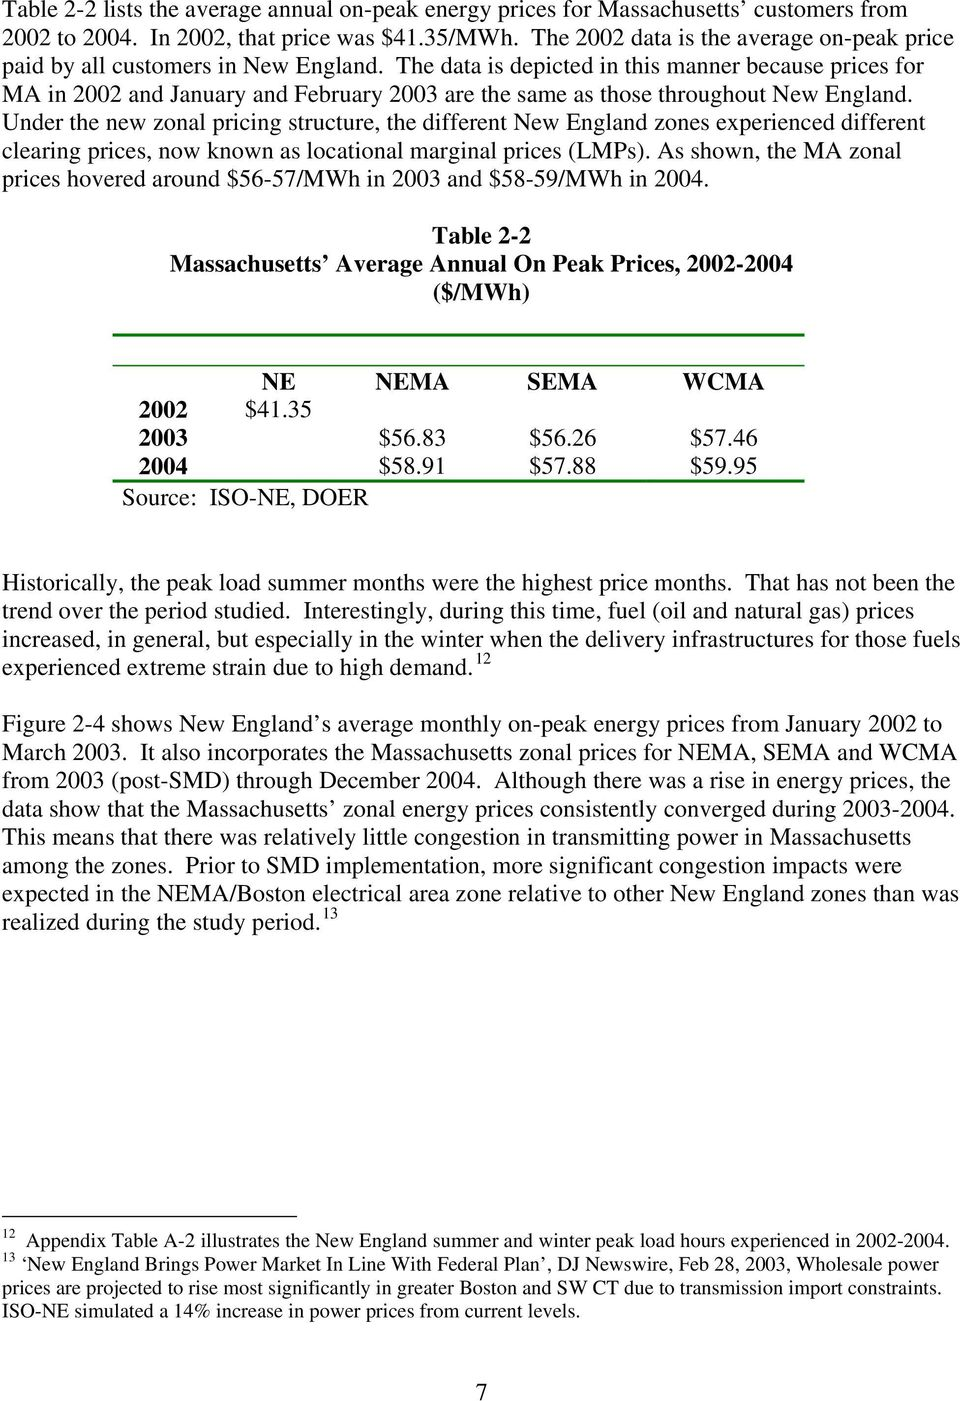 The data is depicted in this manner because prices for MA in 2002 and January and February 2003 are the same as those throughout New England.